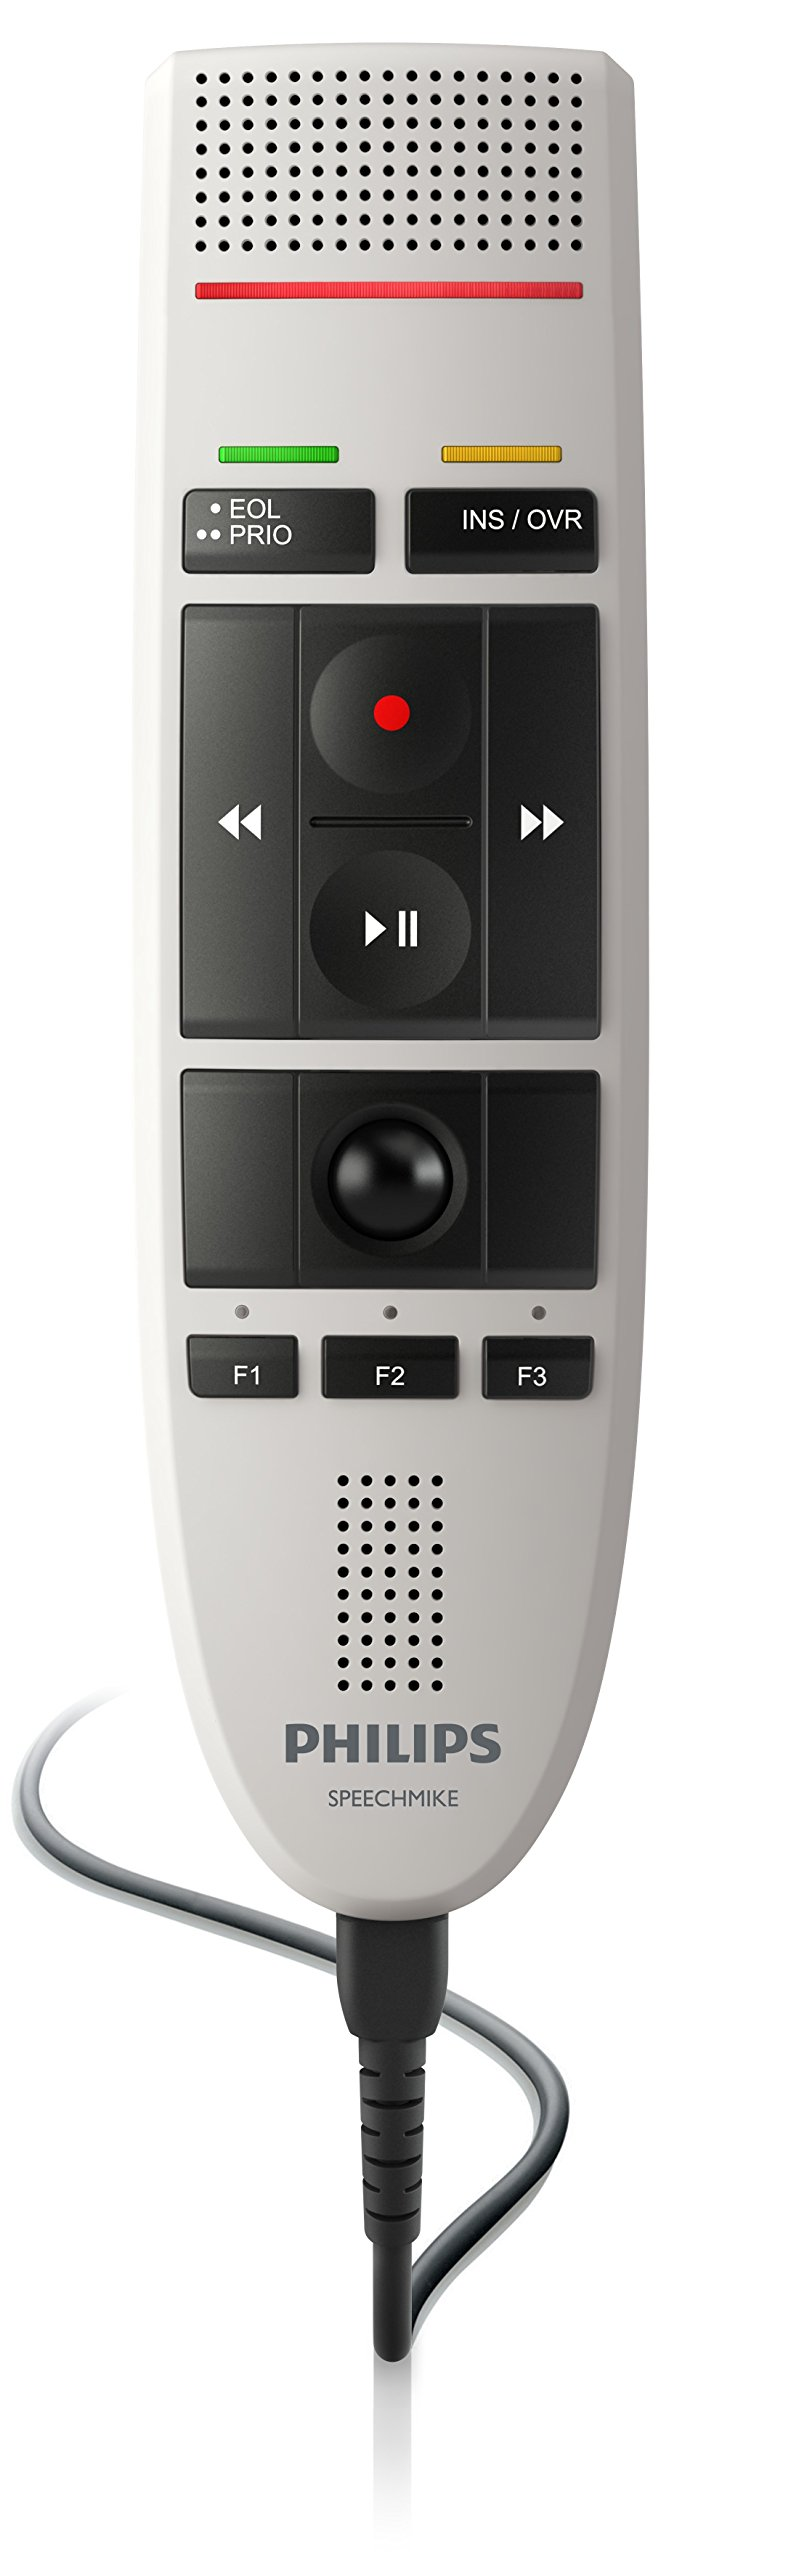 Philips LFH3200 SpeechMike III Pro (Push Button Operation) USB Professional PC-Dictation Microphone by Philips